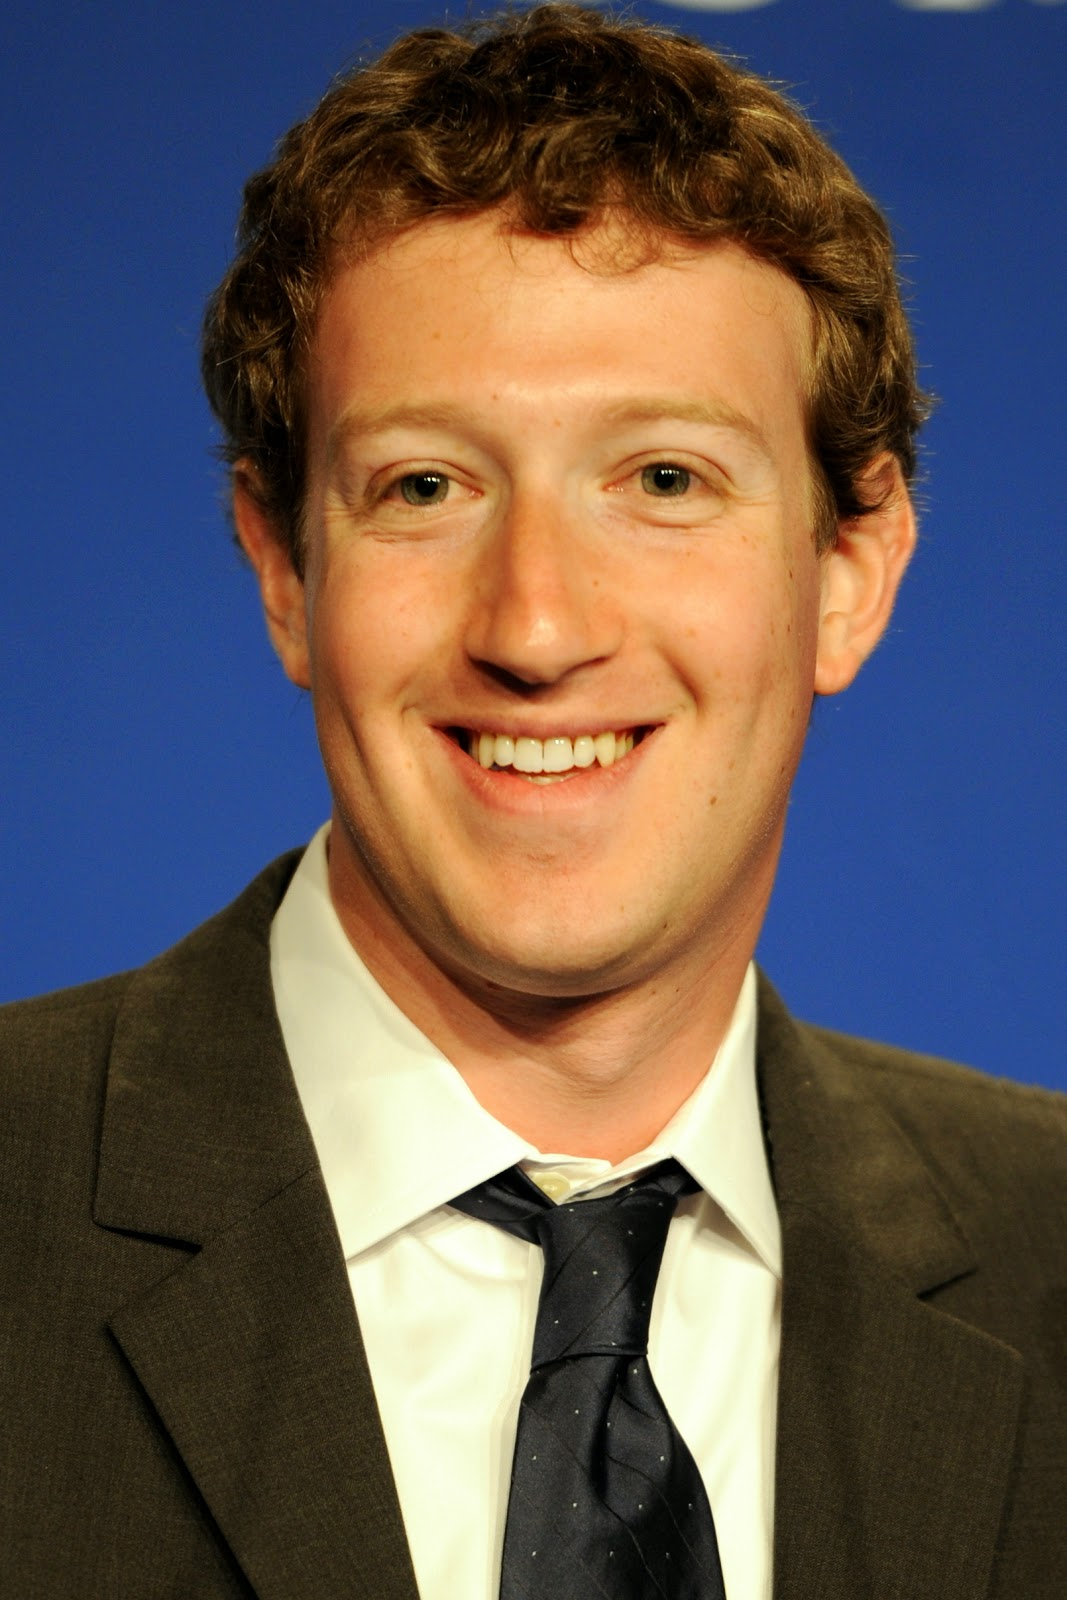 mark-zuckerberg-net-worth